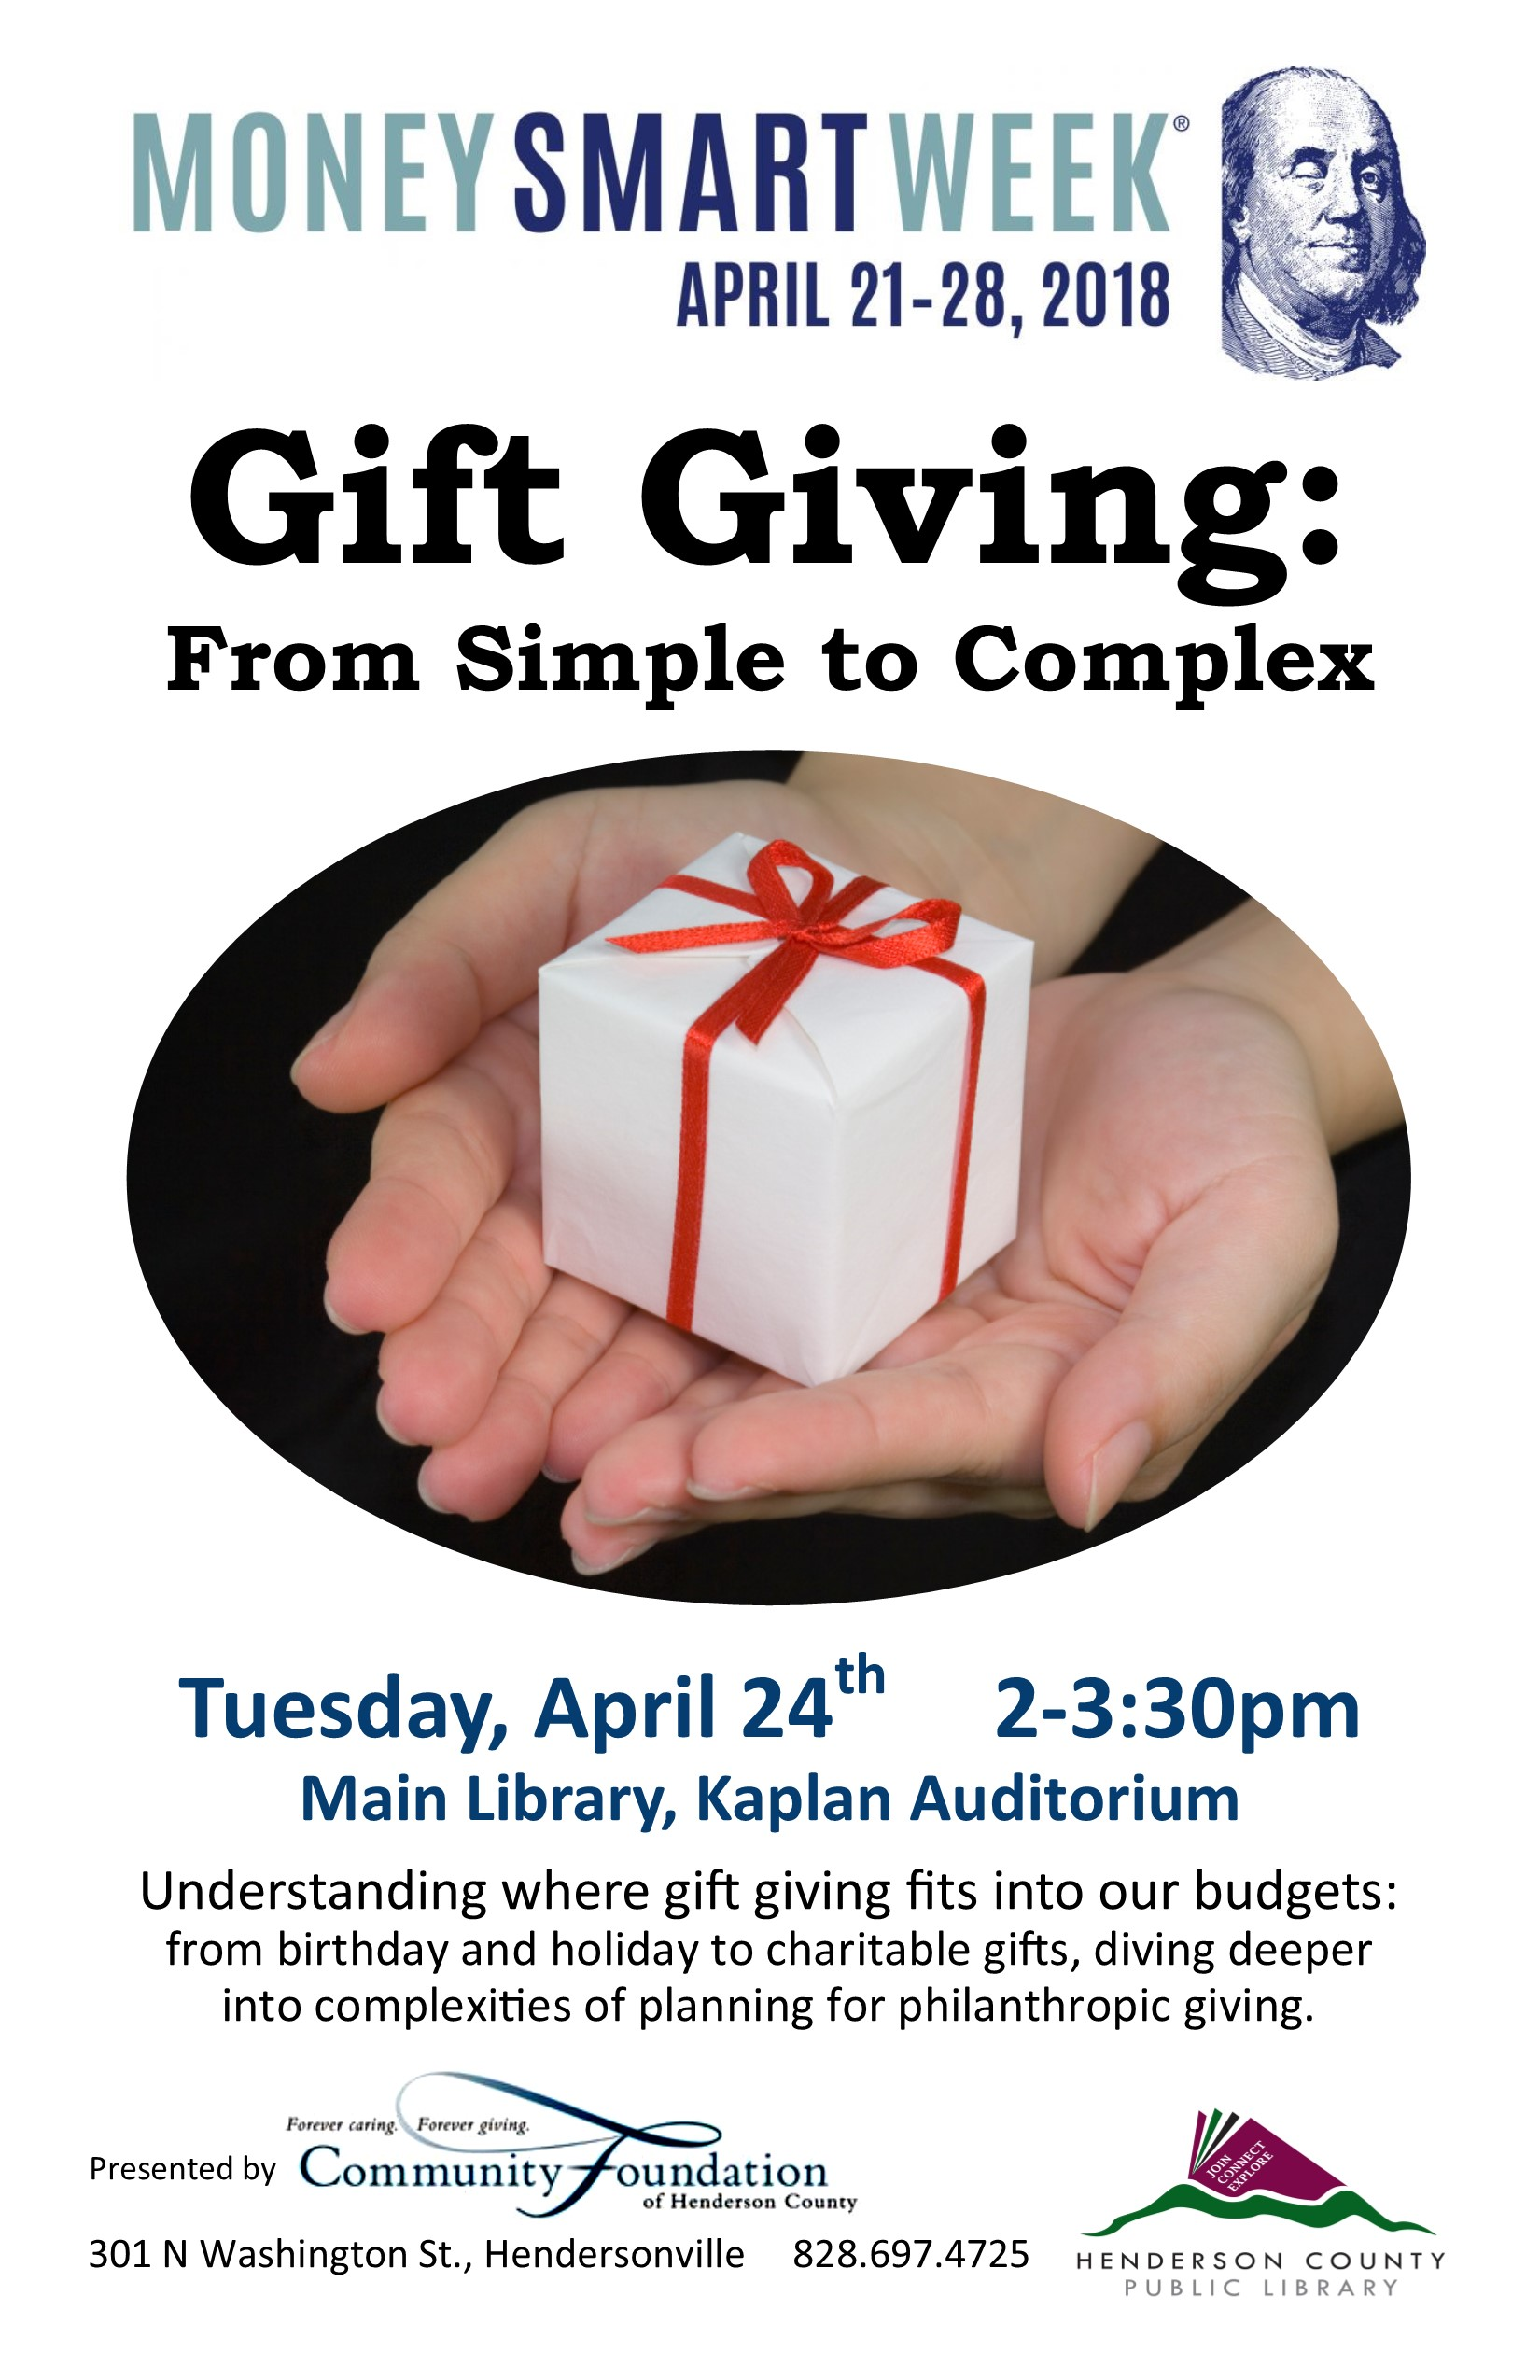 Gift Giving: From Simple to Complex - Money Smart Week